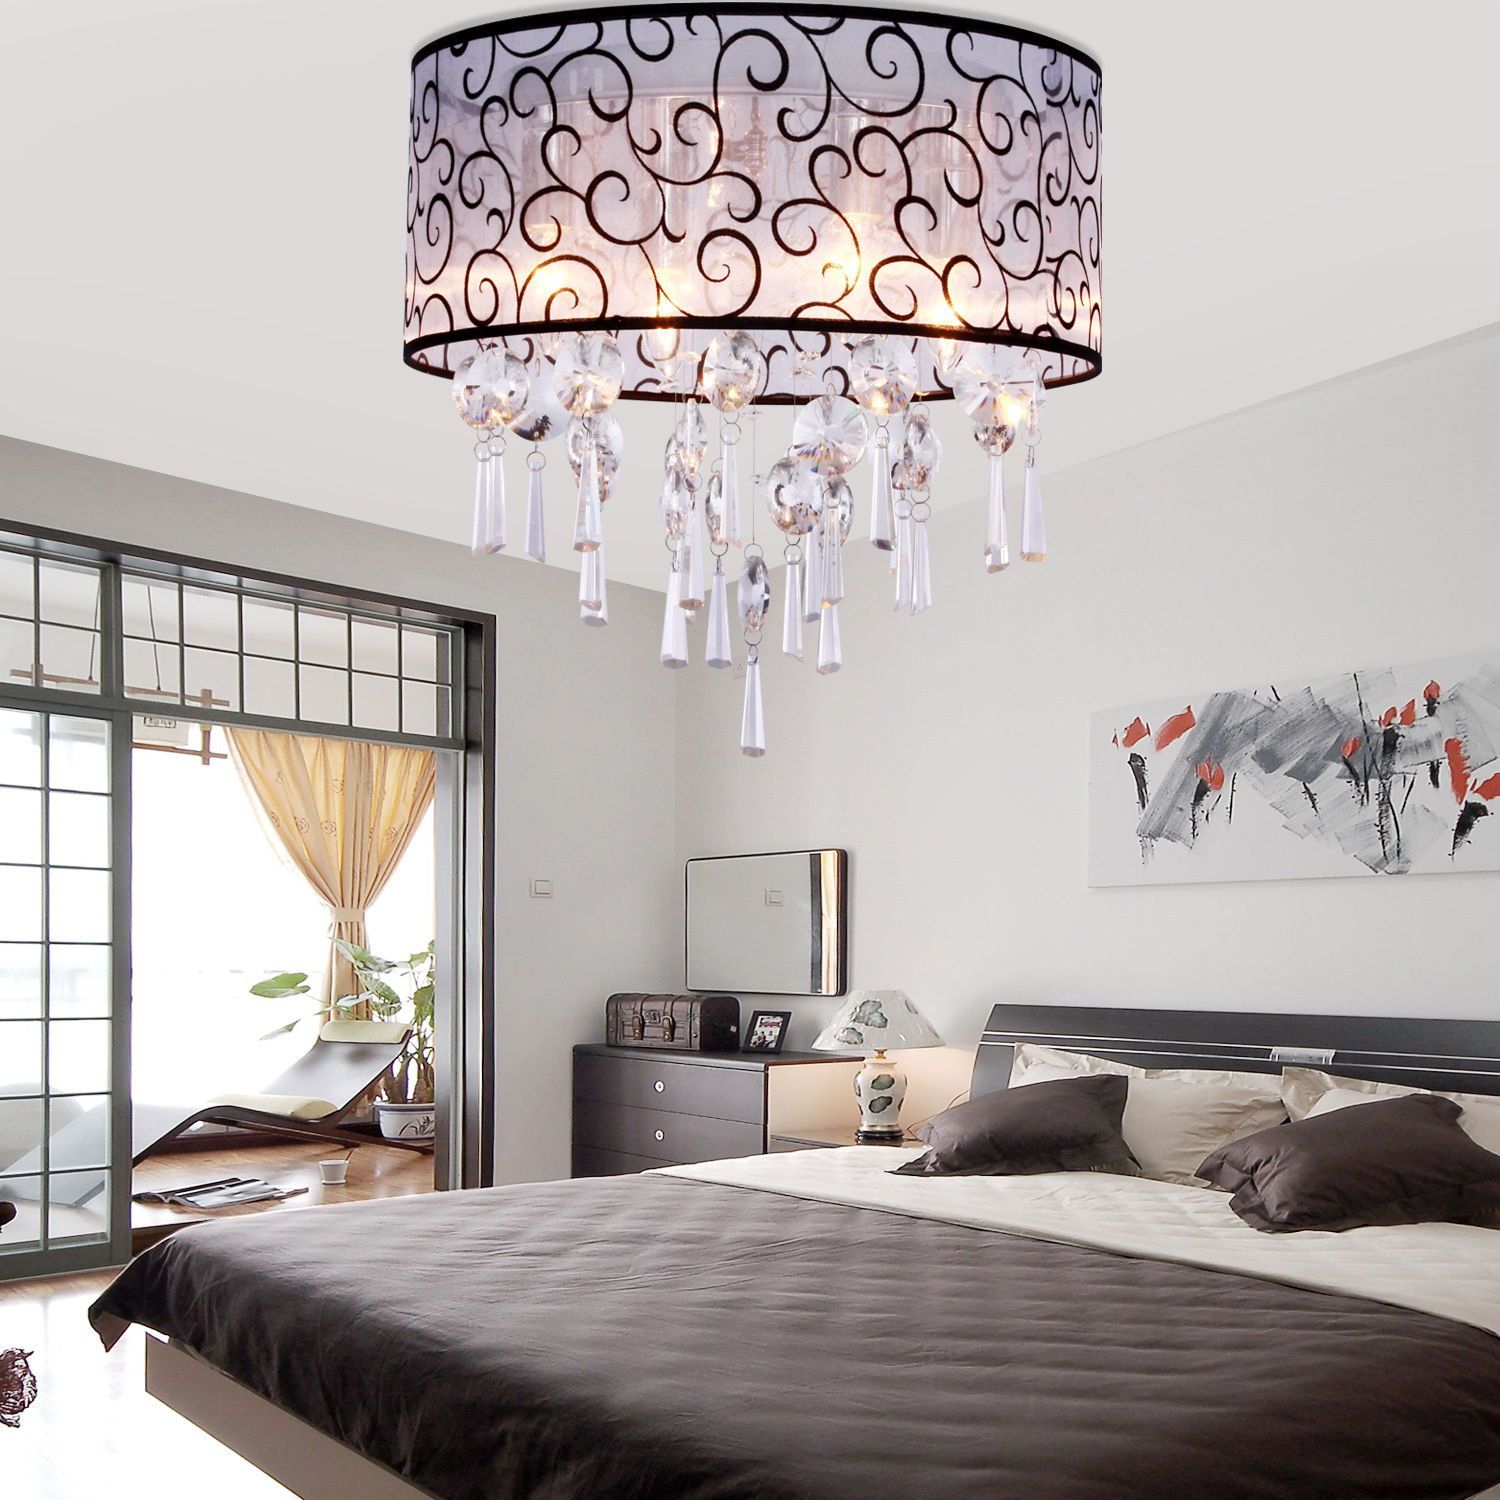 impressive-bedroom-interior-accessories-decoration-integrates-charming-king-size-bed-complete-fabulous-balcony-also-shining-crystal-chandelier-for-modern-ceiling-design-inspiration-crystal-chandelier